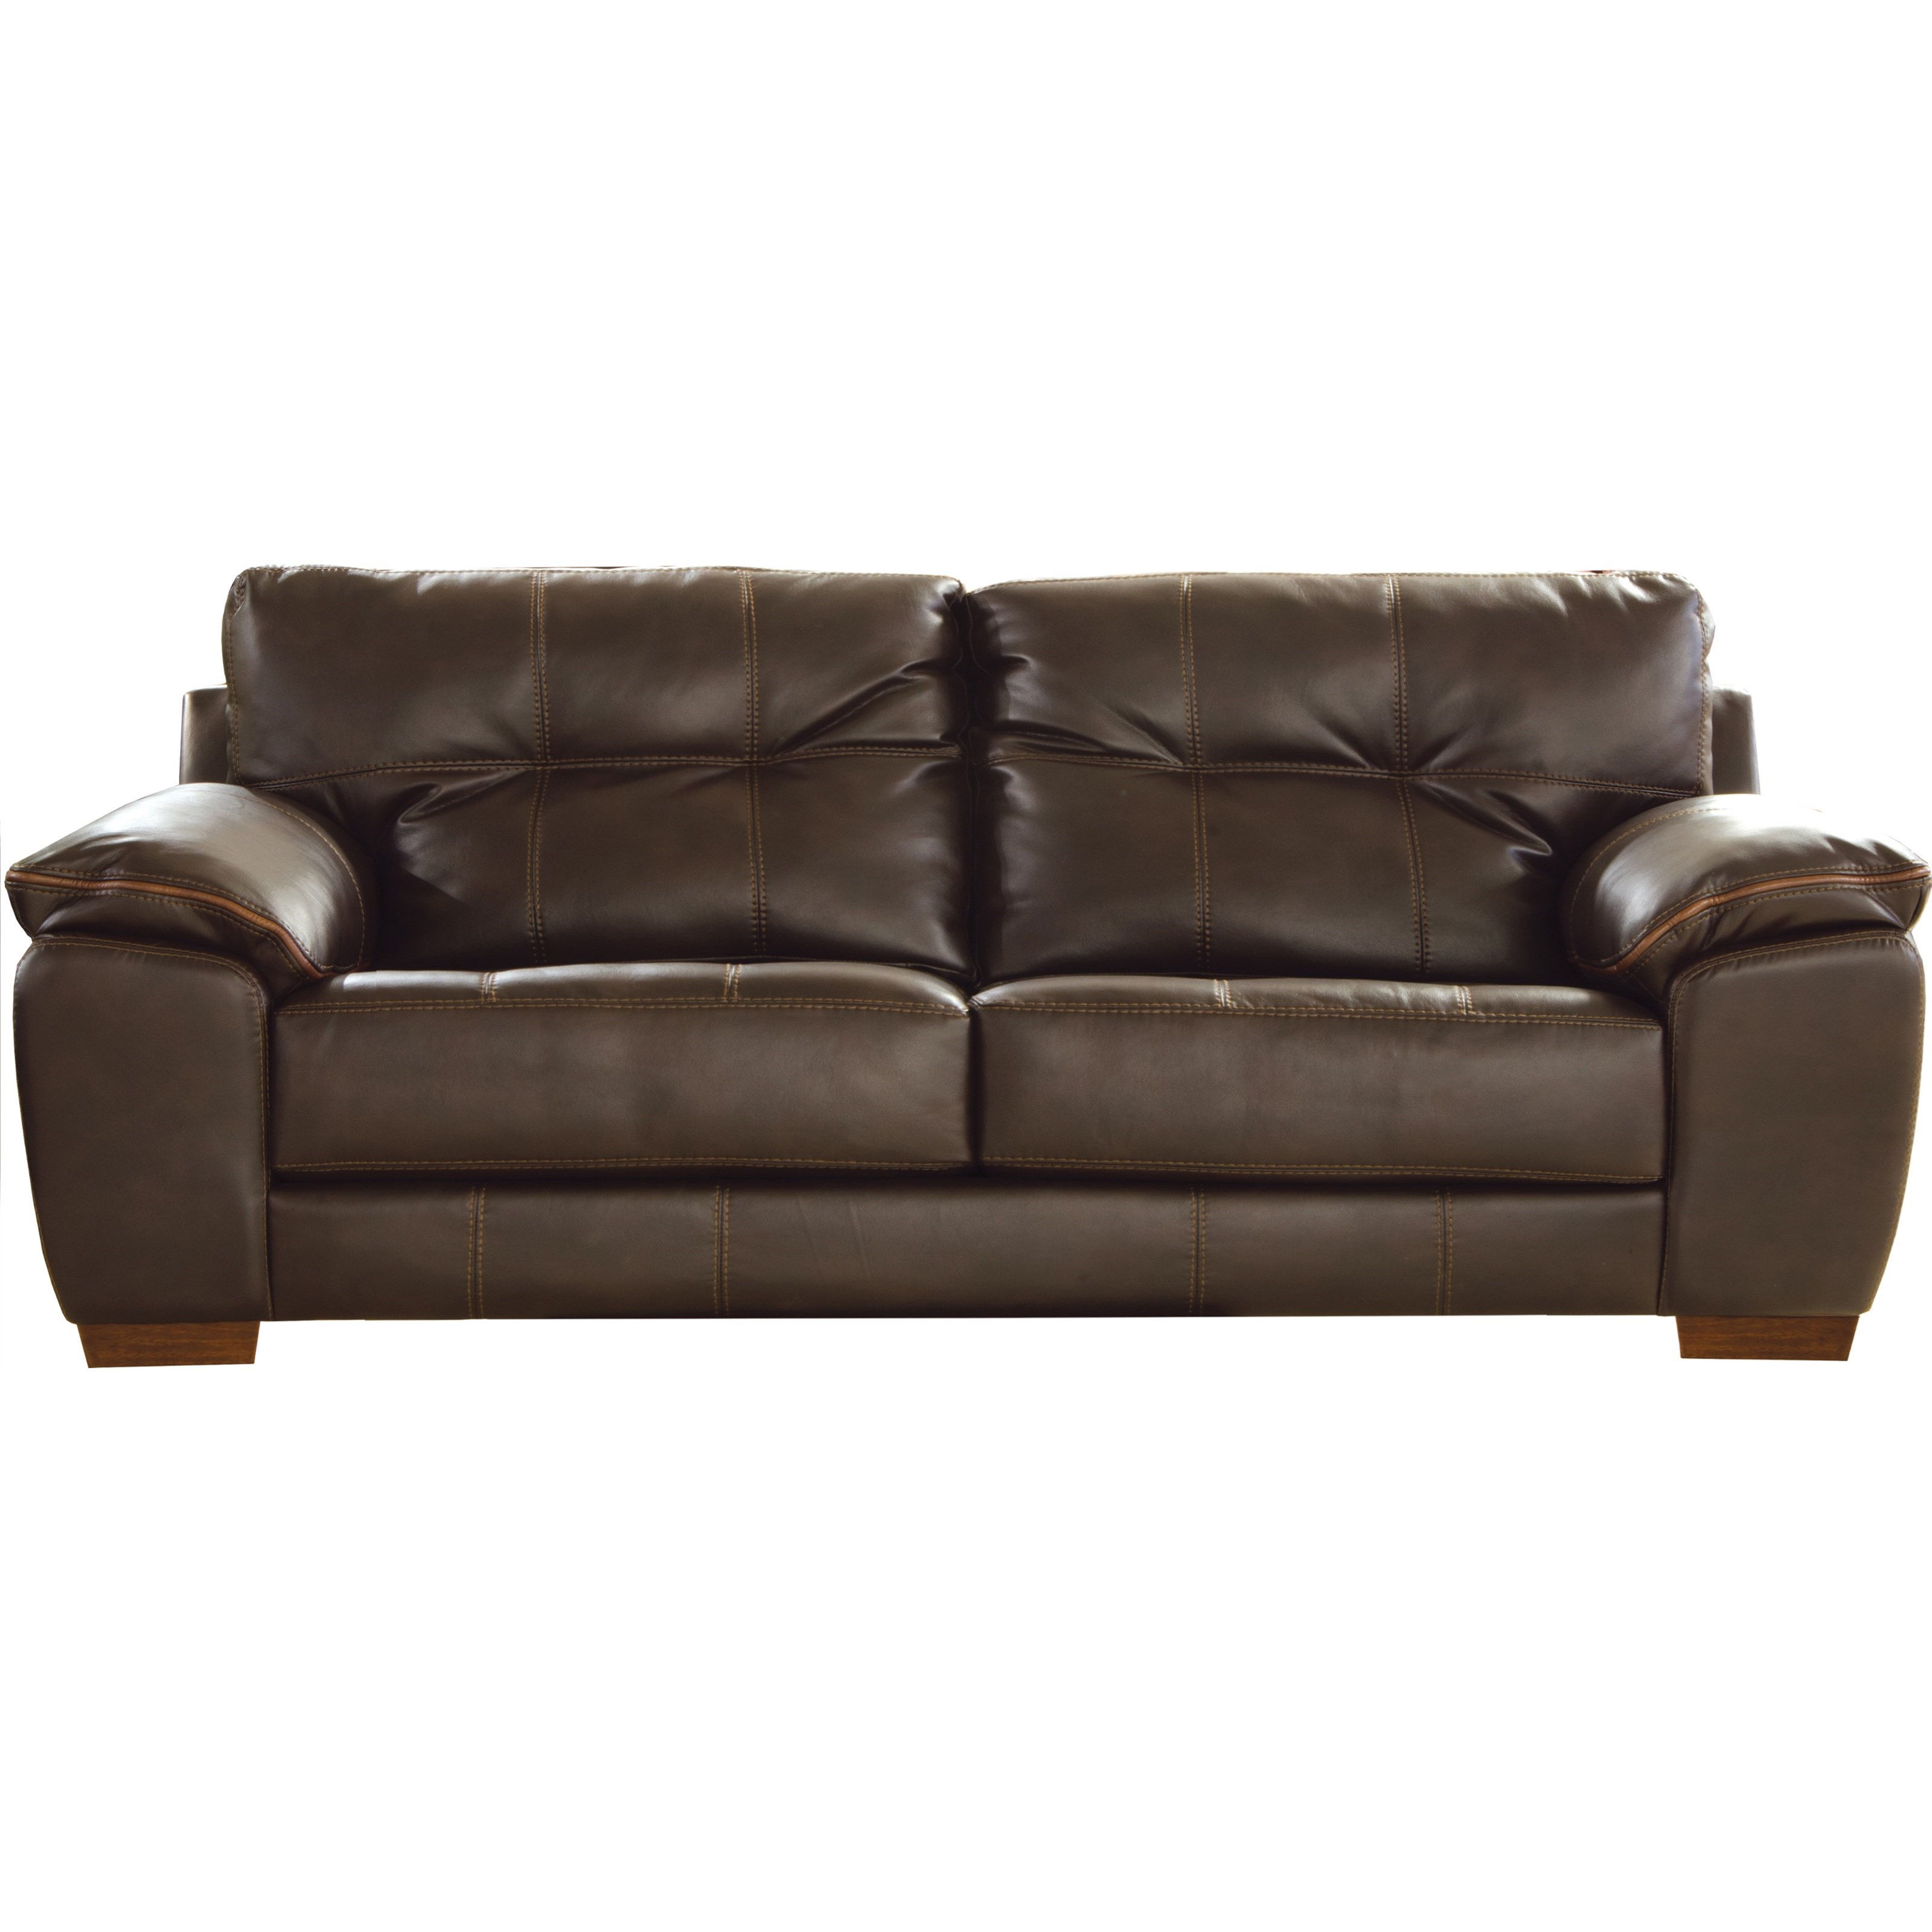 Hudson Sofa by Jackson Furniture at Northeast Factory Direct